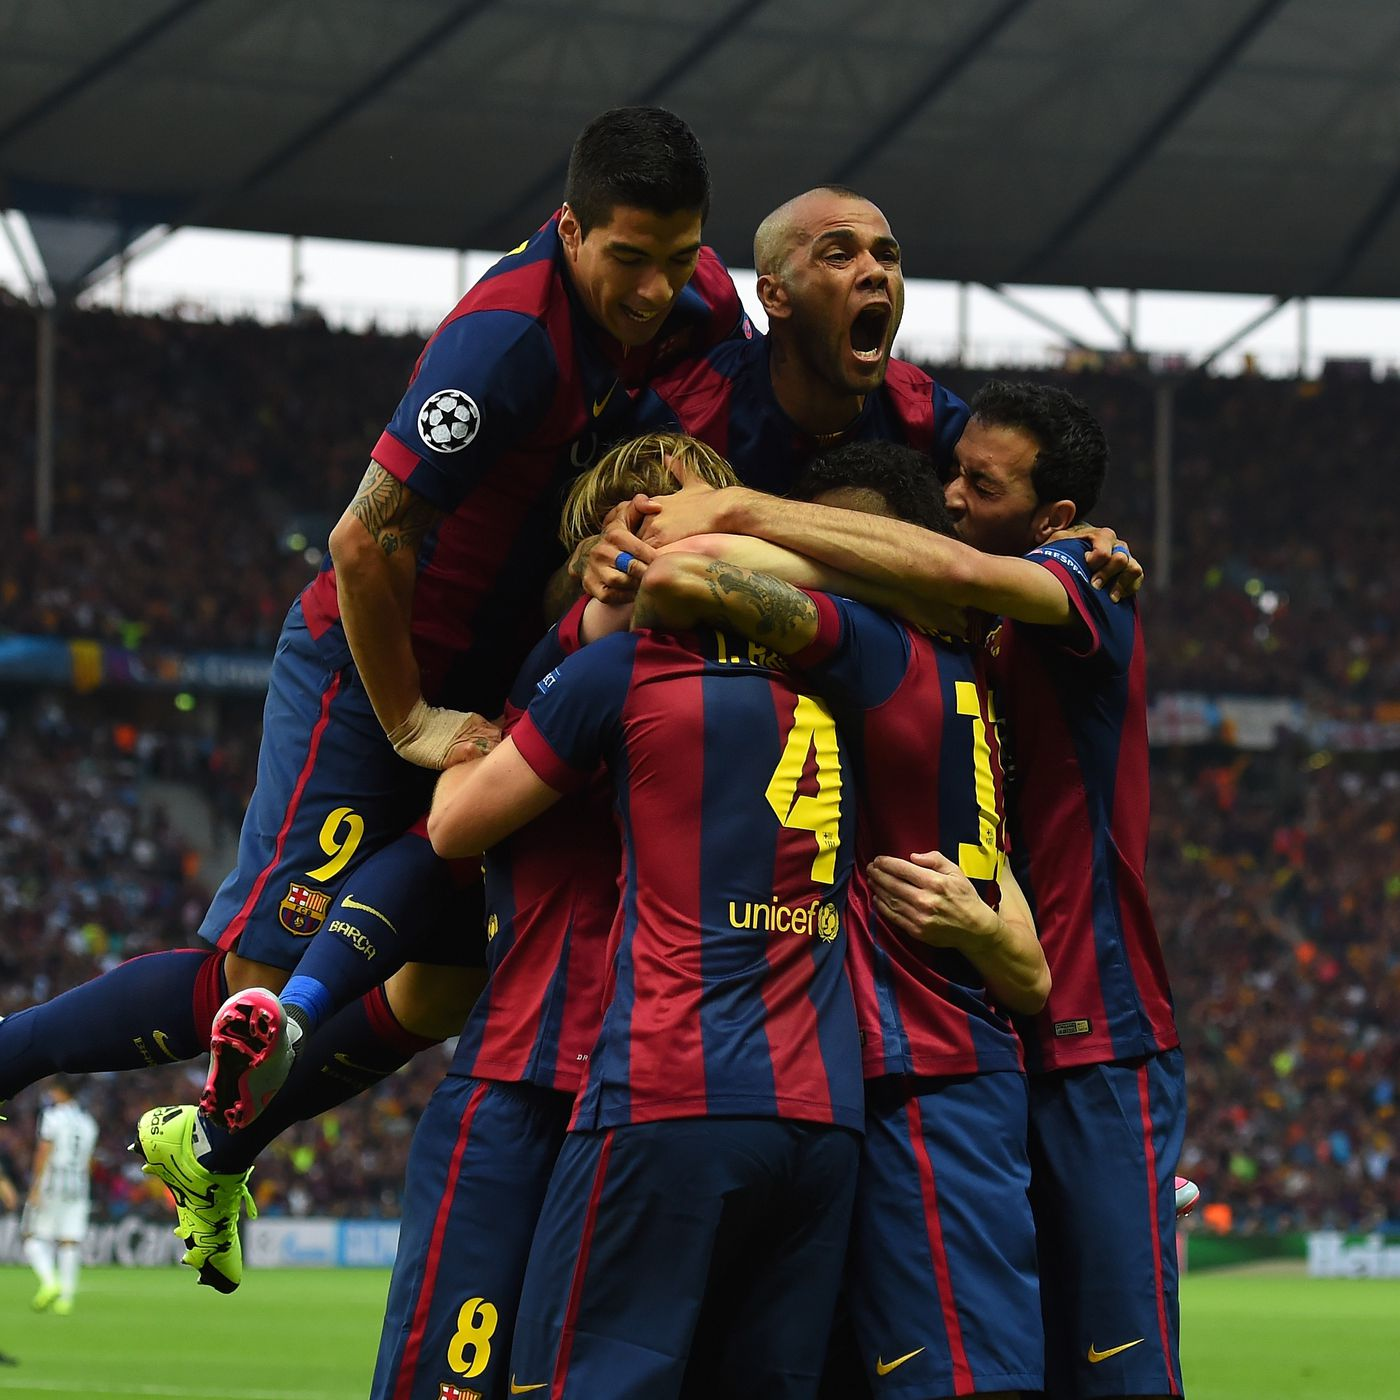 Barcelona Vs Juventus Final Score 3 1 Blaugrana Win The Treble After Dramatic Champions League Battle Sbnation Com